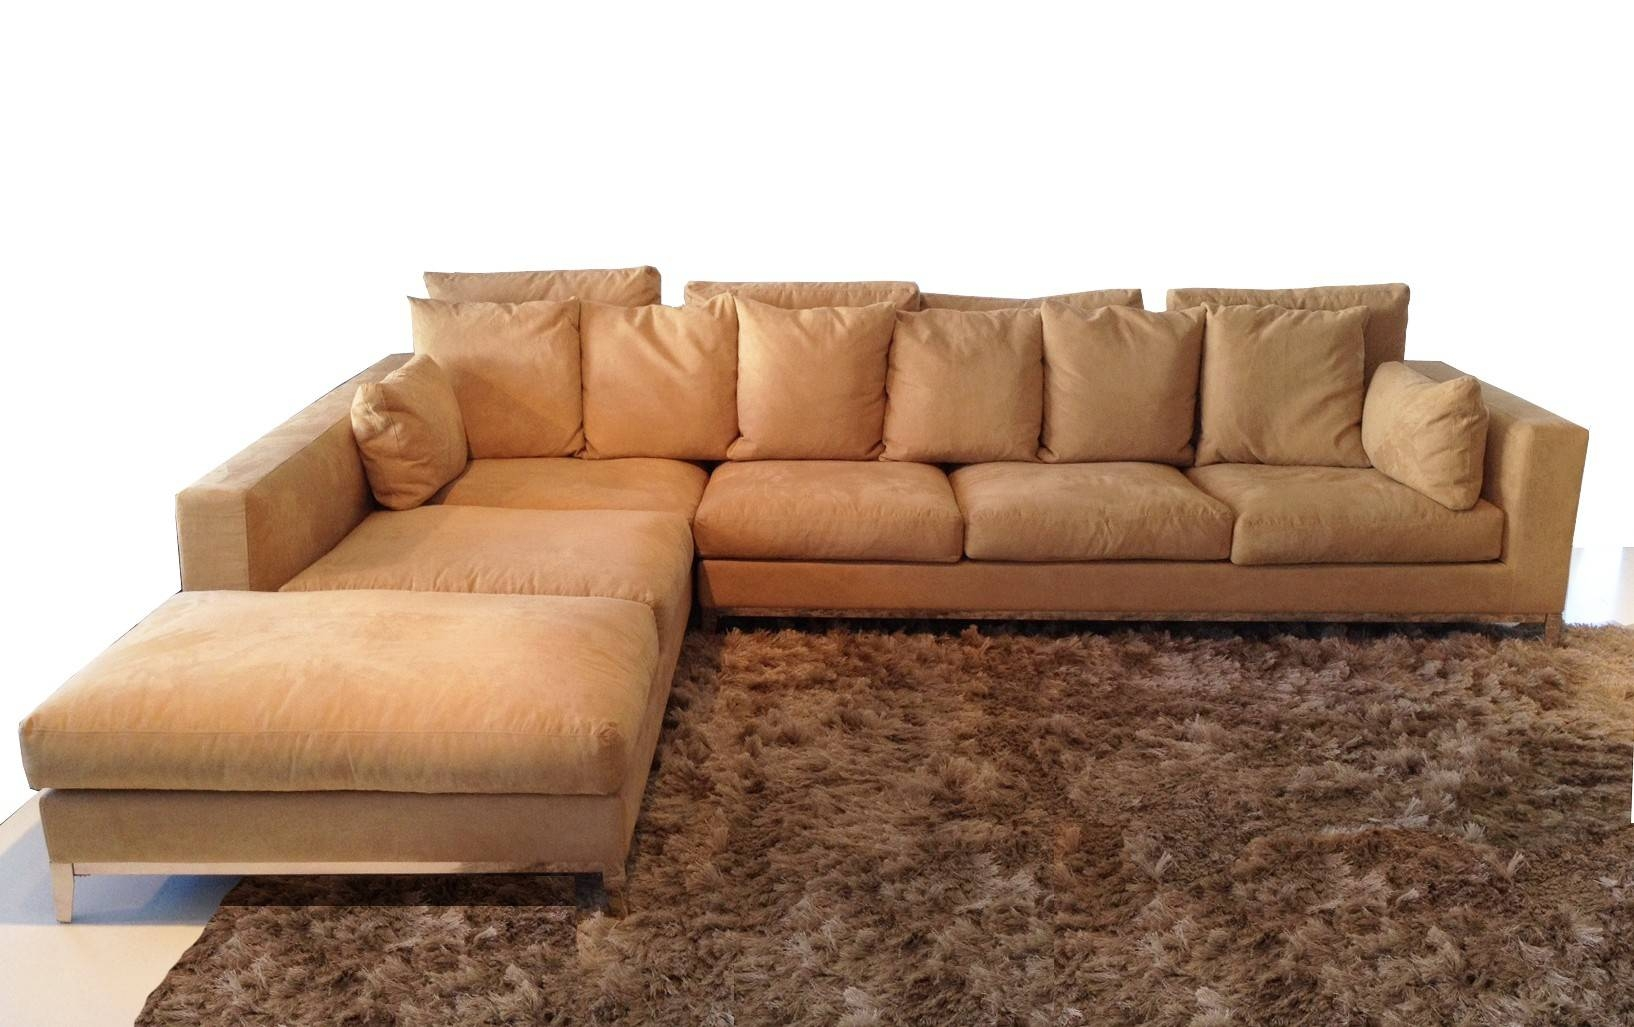 Sofa: Huge Sectional Sofa with regard to Huge Sofas (Image 23 of 30)